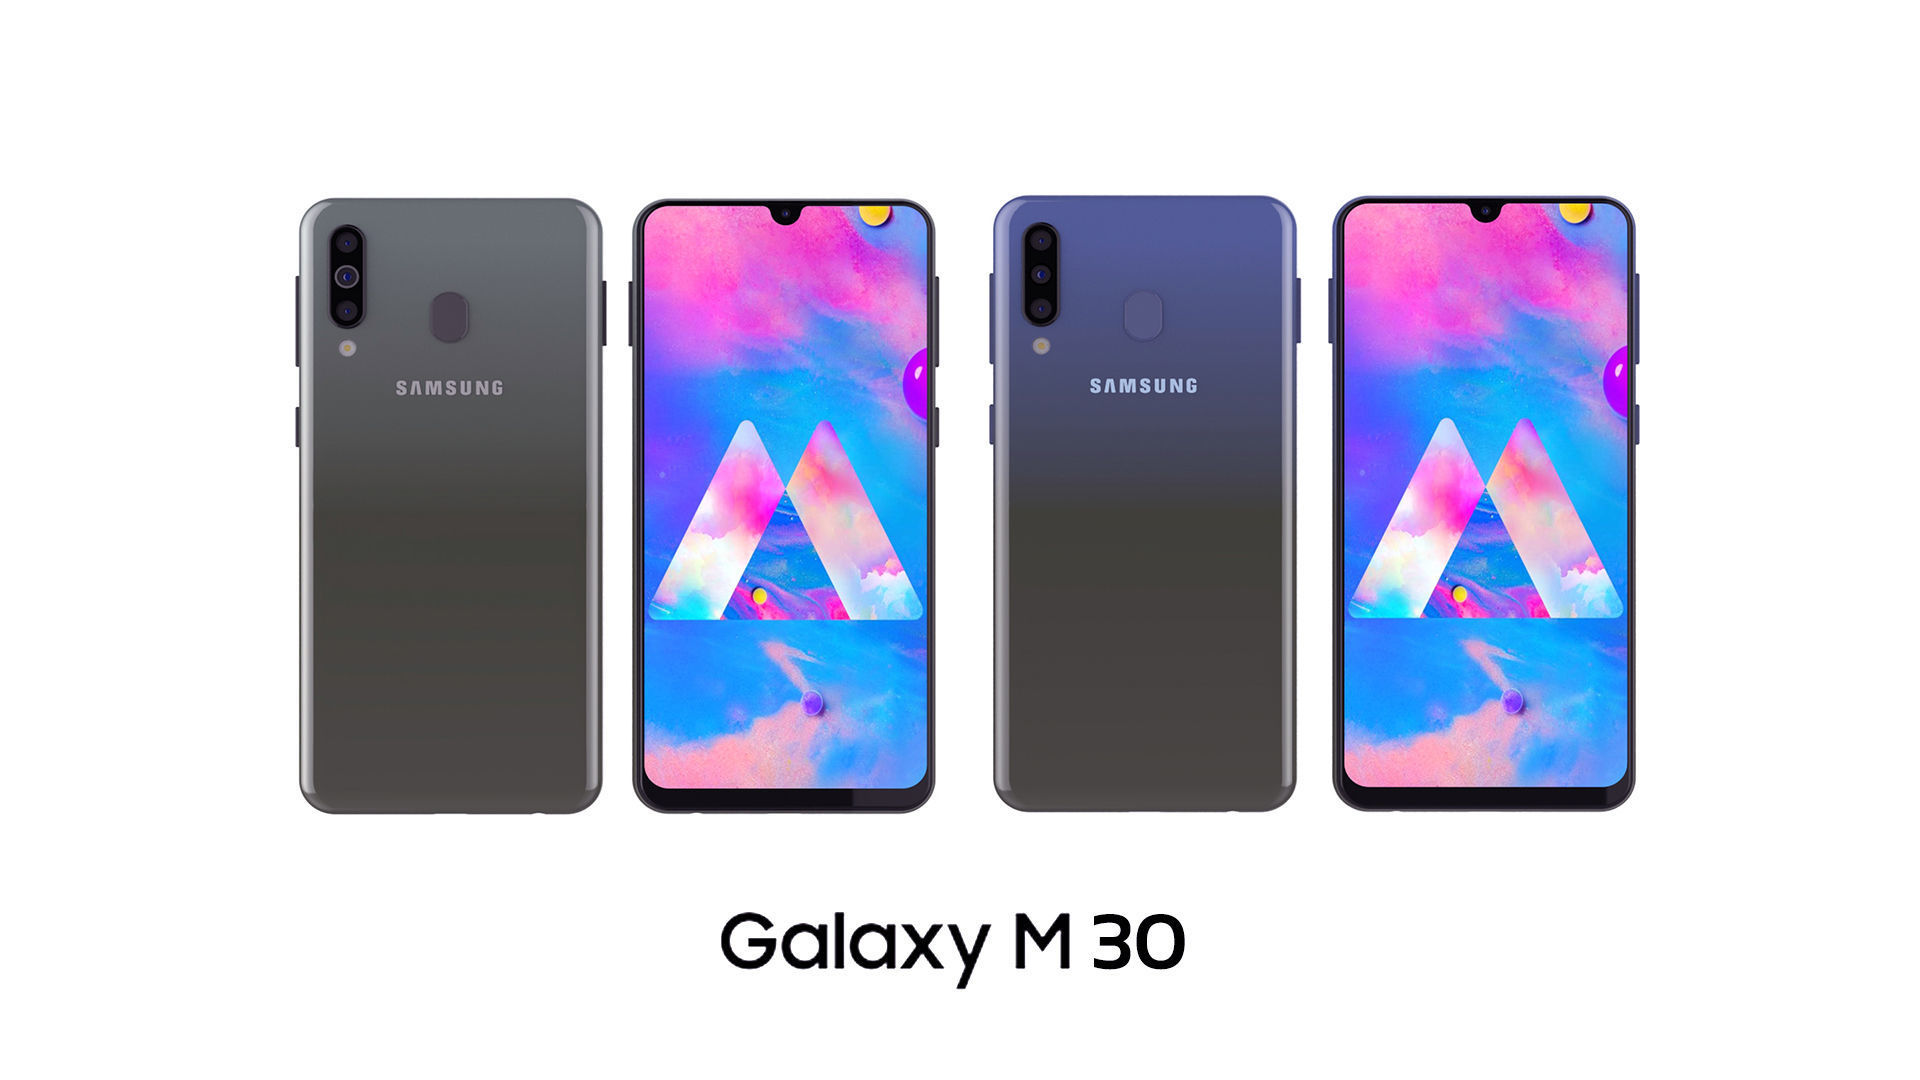 Download Samsung Galaxy M30 Stock Wallpapers, Free Download FHD Stock Wallpapers